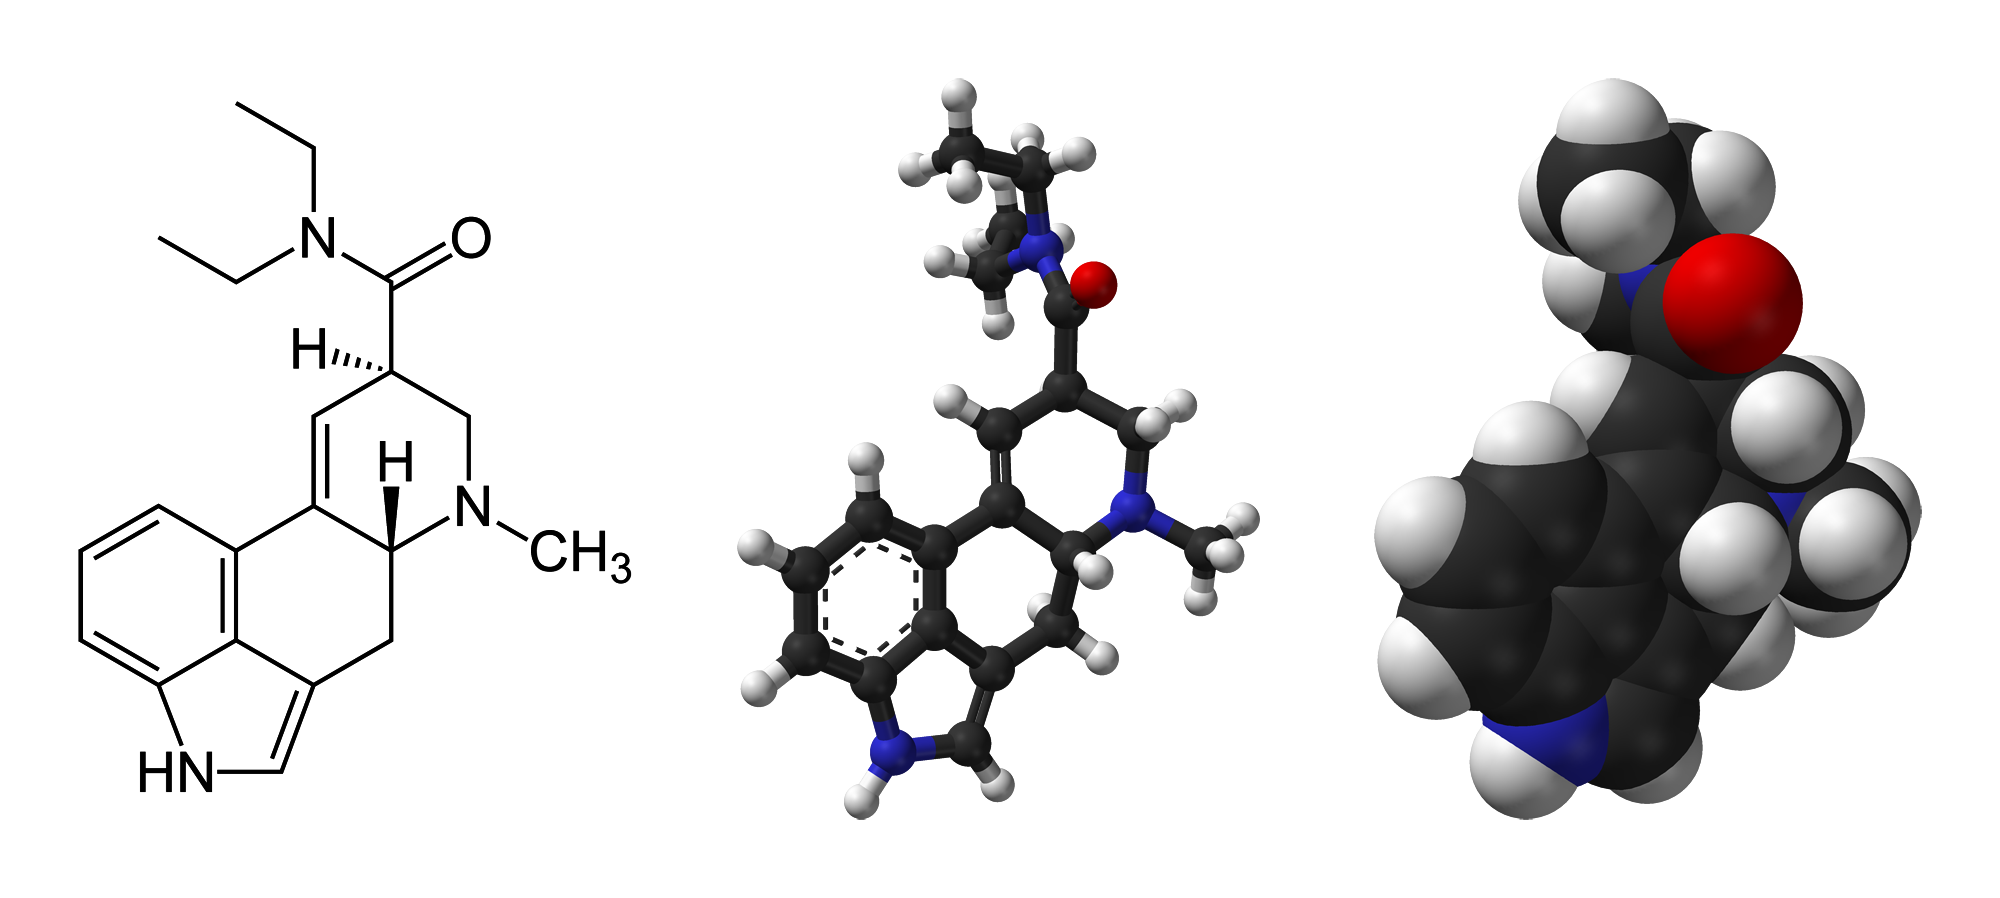 a study of lysergic acid diethylamide lsd or the hallucination drug Hallucinogens are a broad class of drugs that induce visual and auditory hallucinations and lysergic acid diethylamide lsd are described as drug.